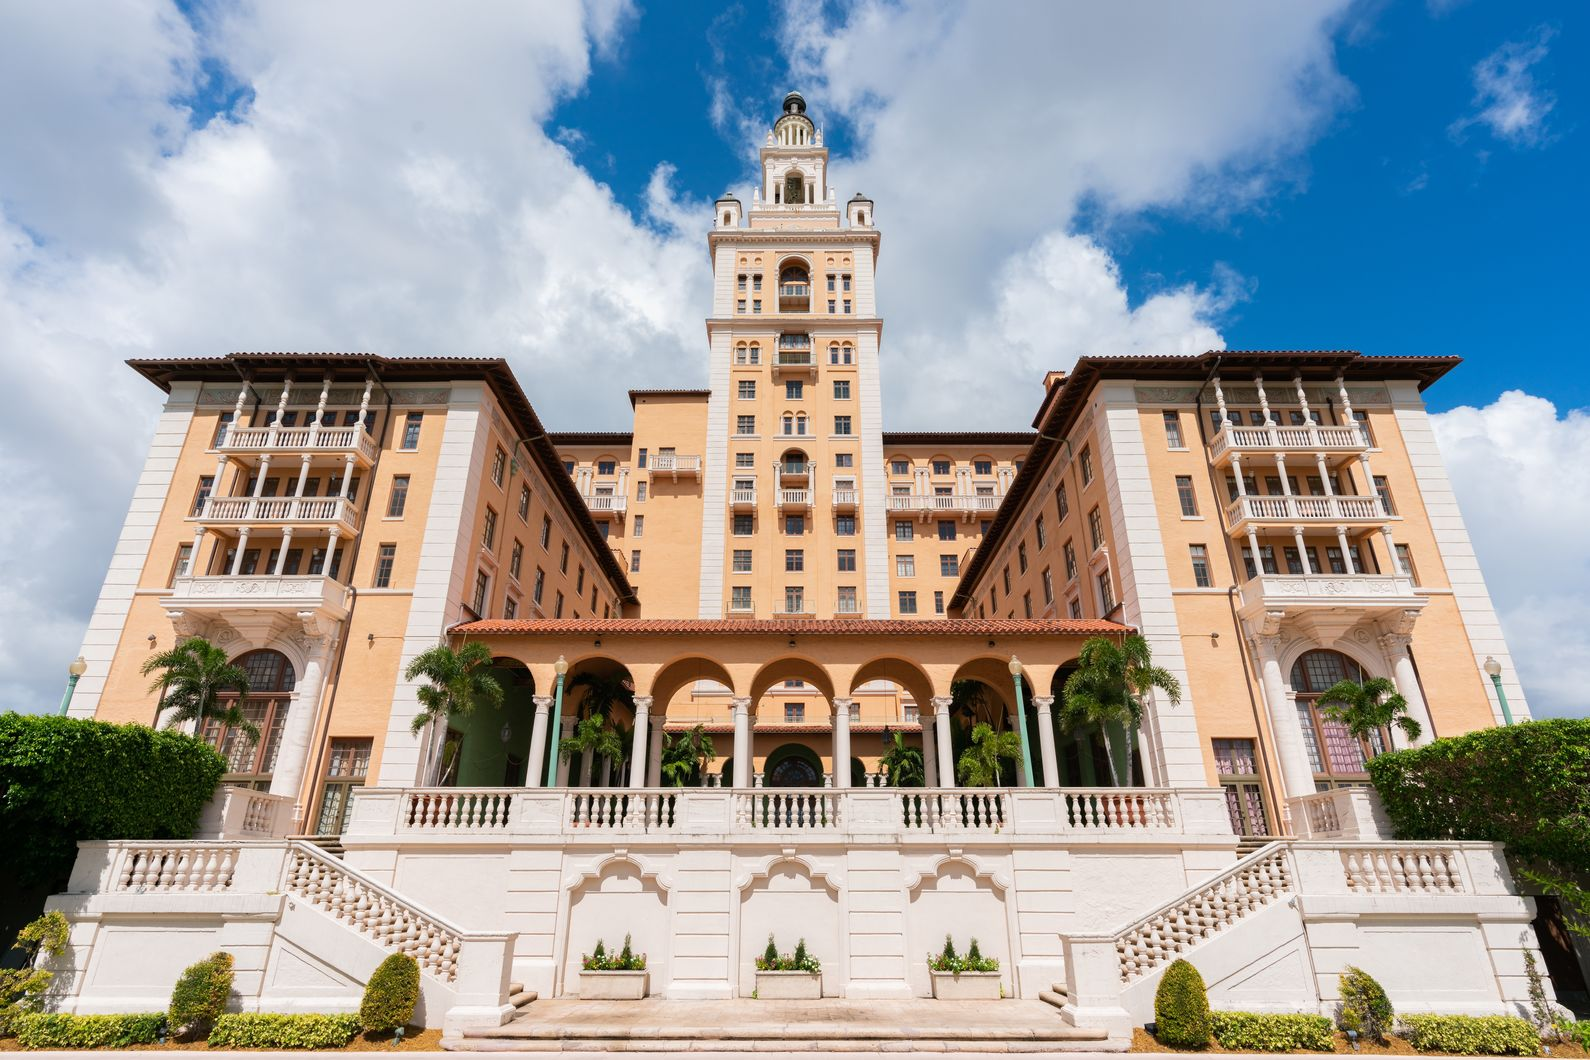 The Biltmore Hotel Near The Henry Apartments in Coral Gables, FL.